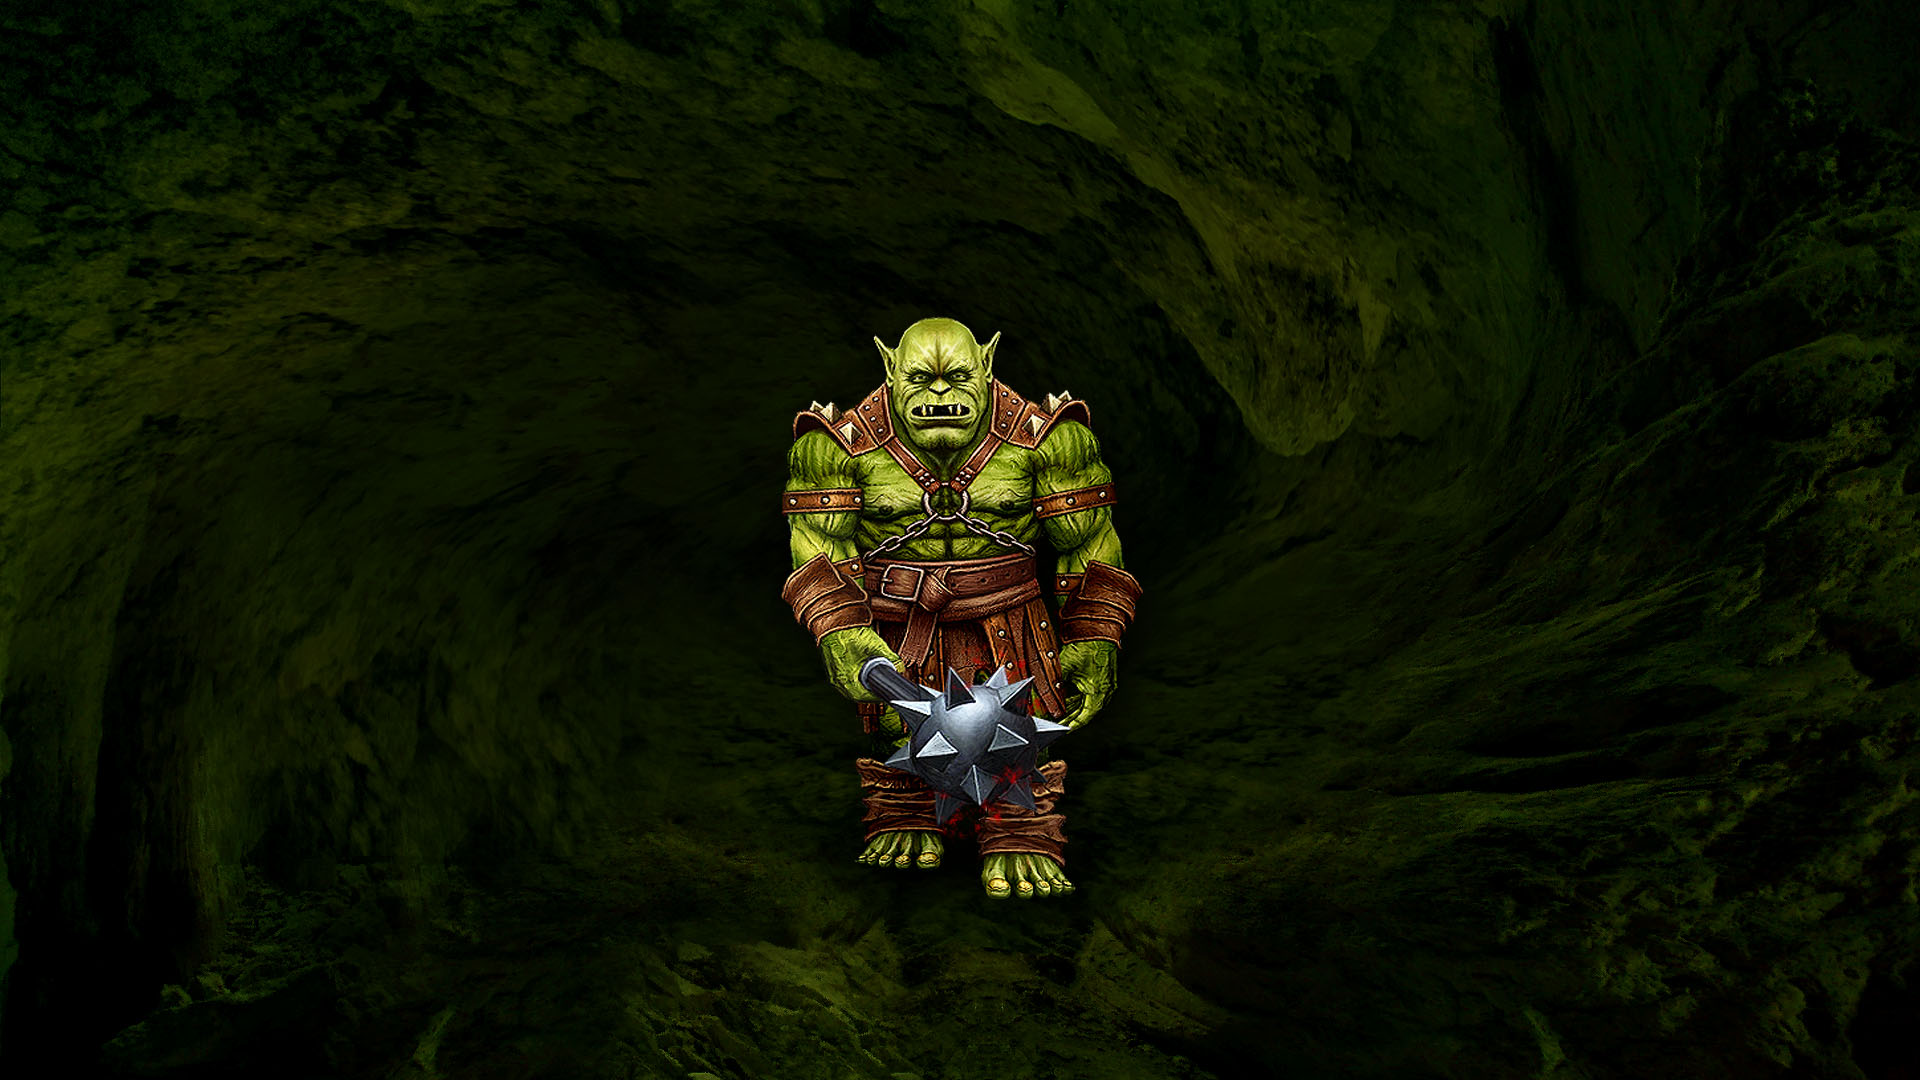 Steam card exchange showcase the quest card 2 of 10artwork the quest orc malvernweather Image collections